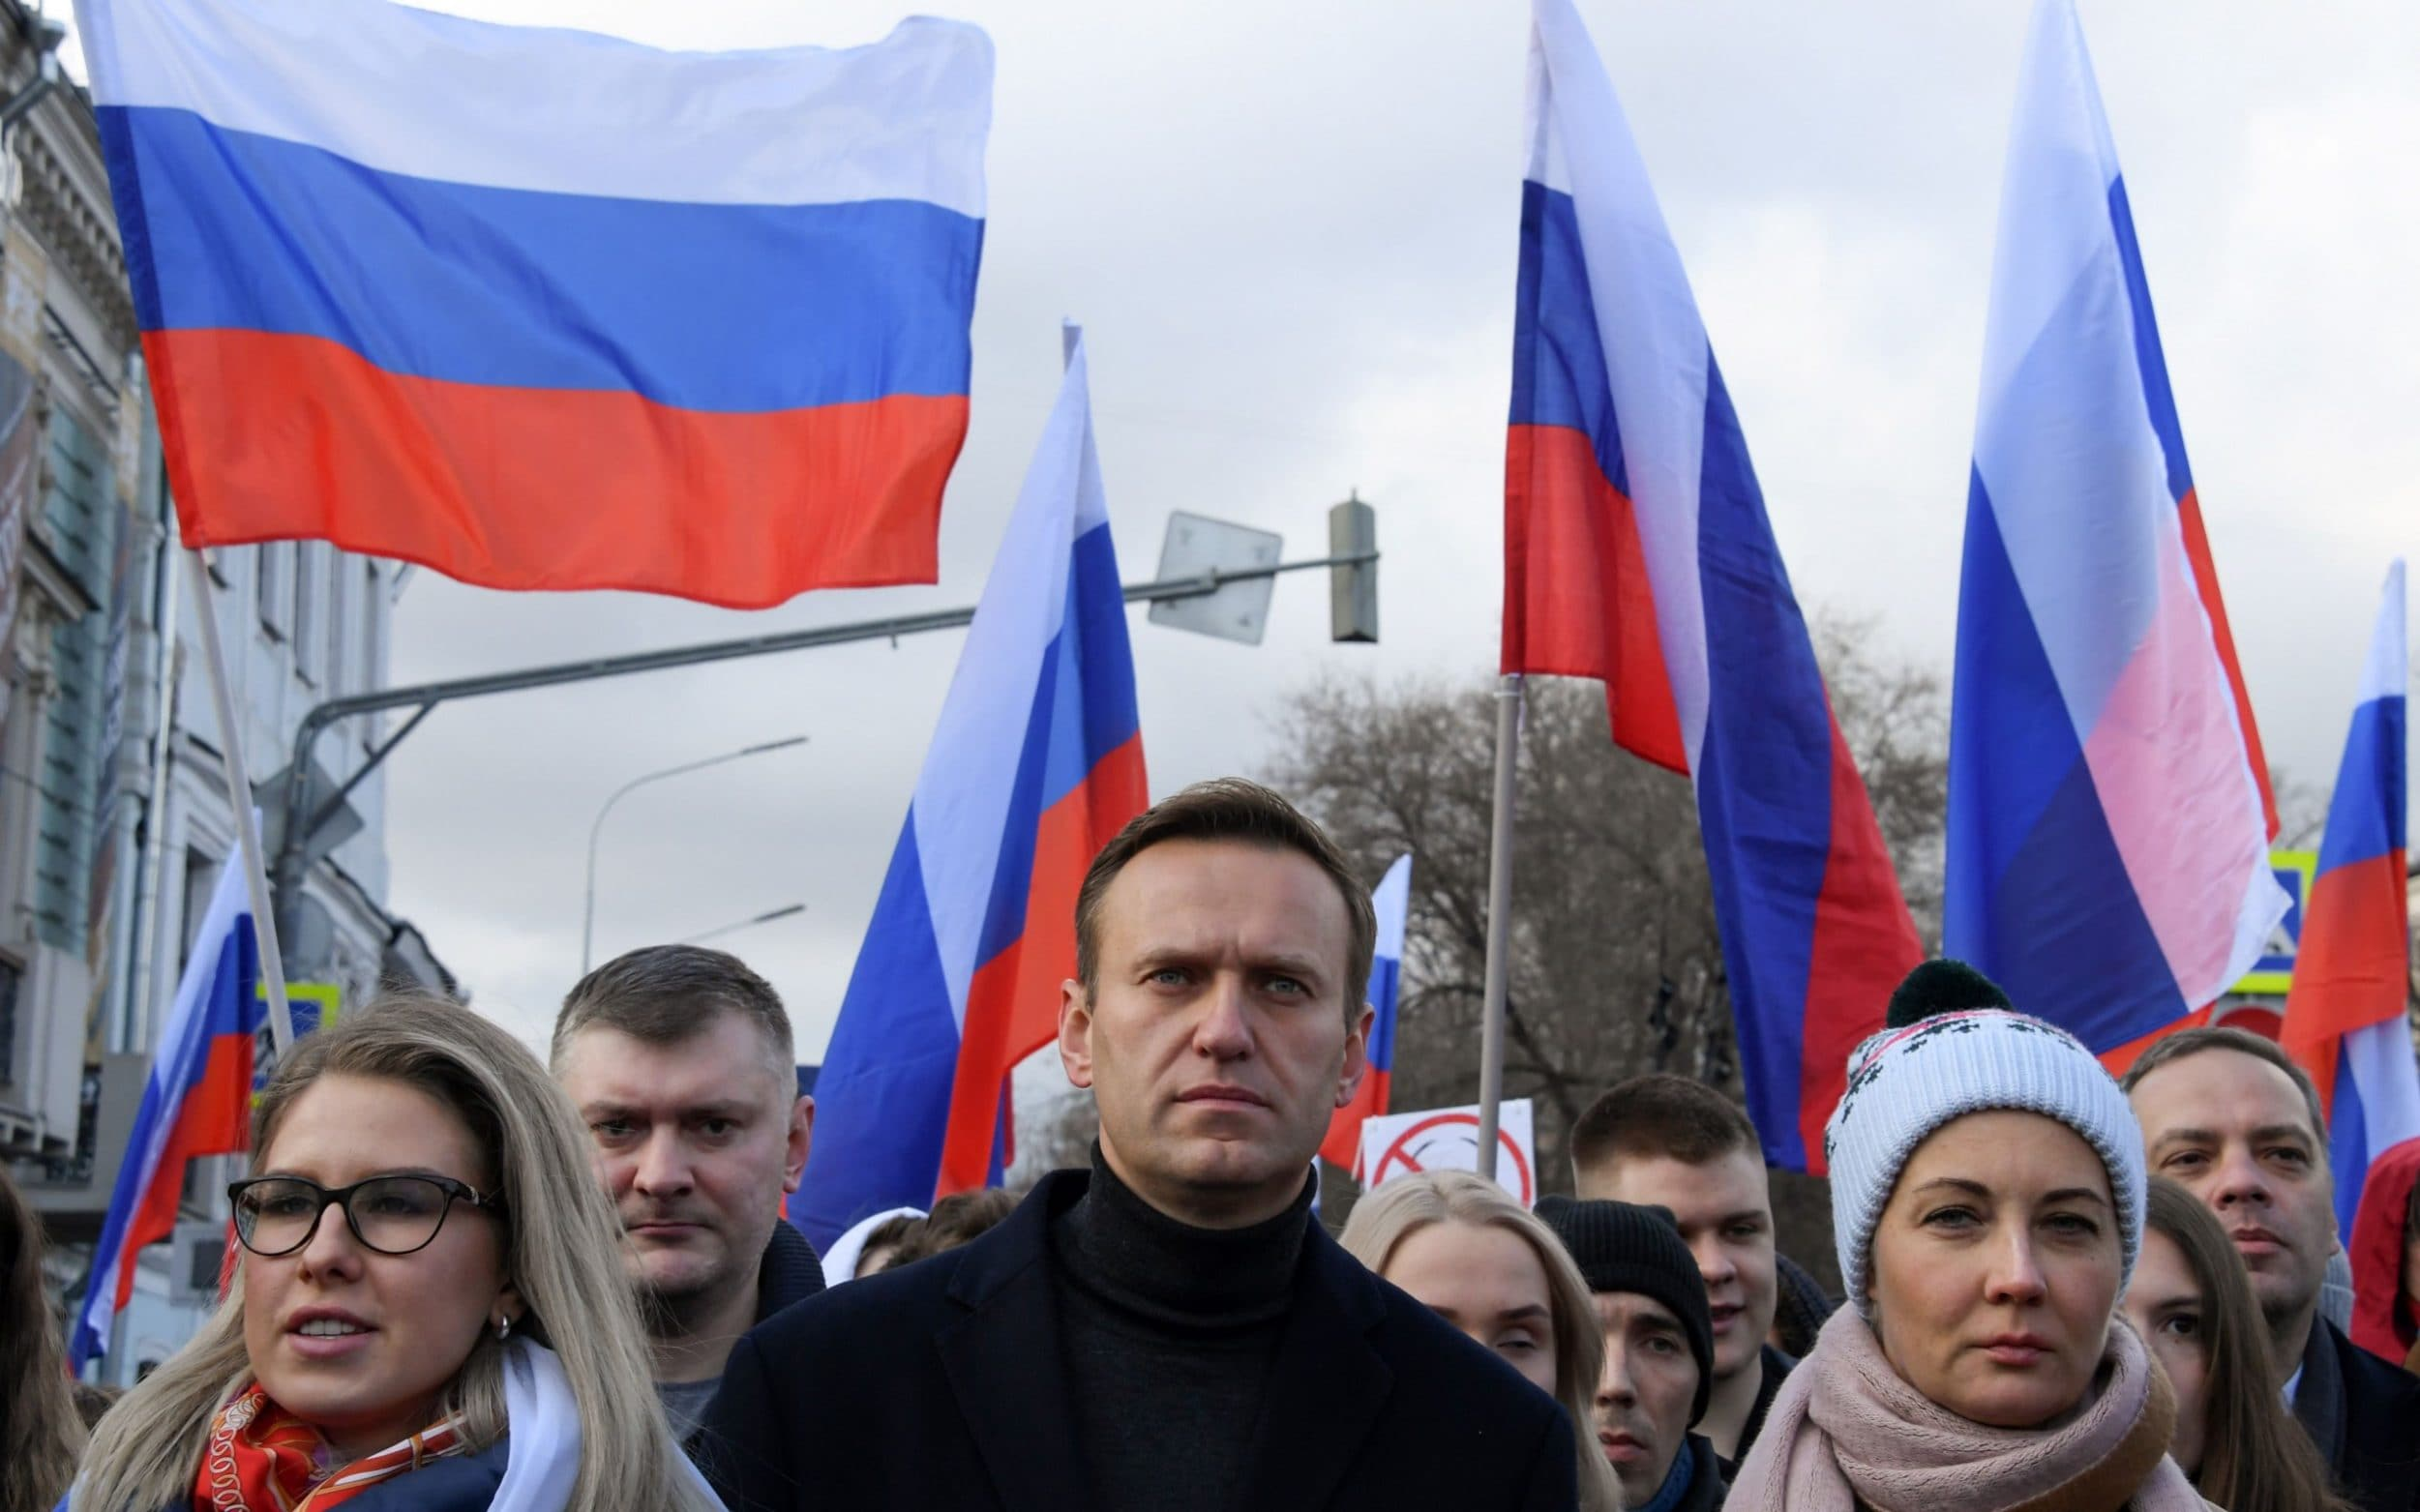 German foreign minister raises spectre of Nord Stream 2 sanctions over Navalny poisoning